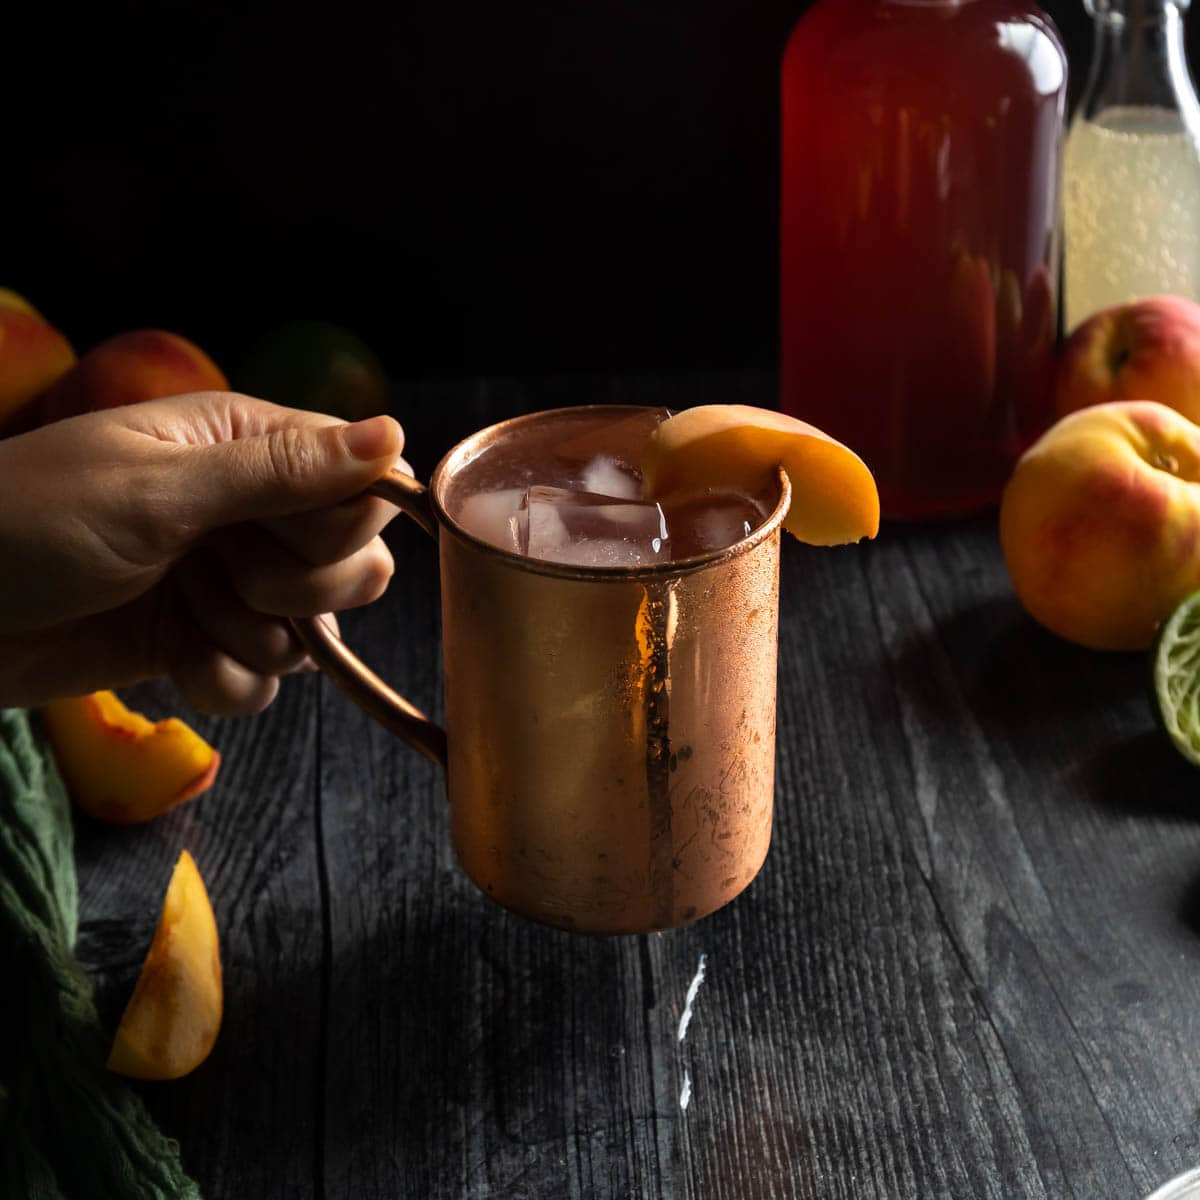 A hand picking up an icy copper mug of Peach Moscow Mule garnished with a fresh peach slice